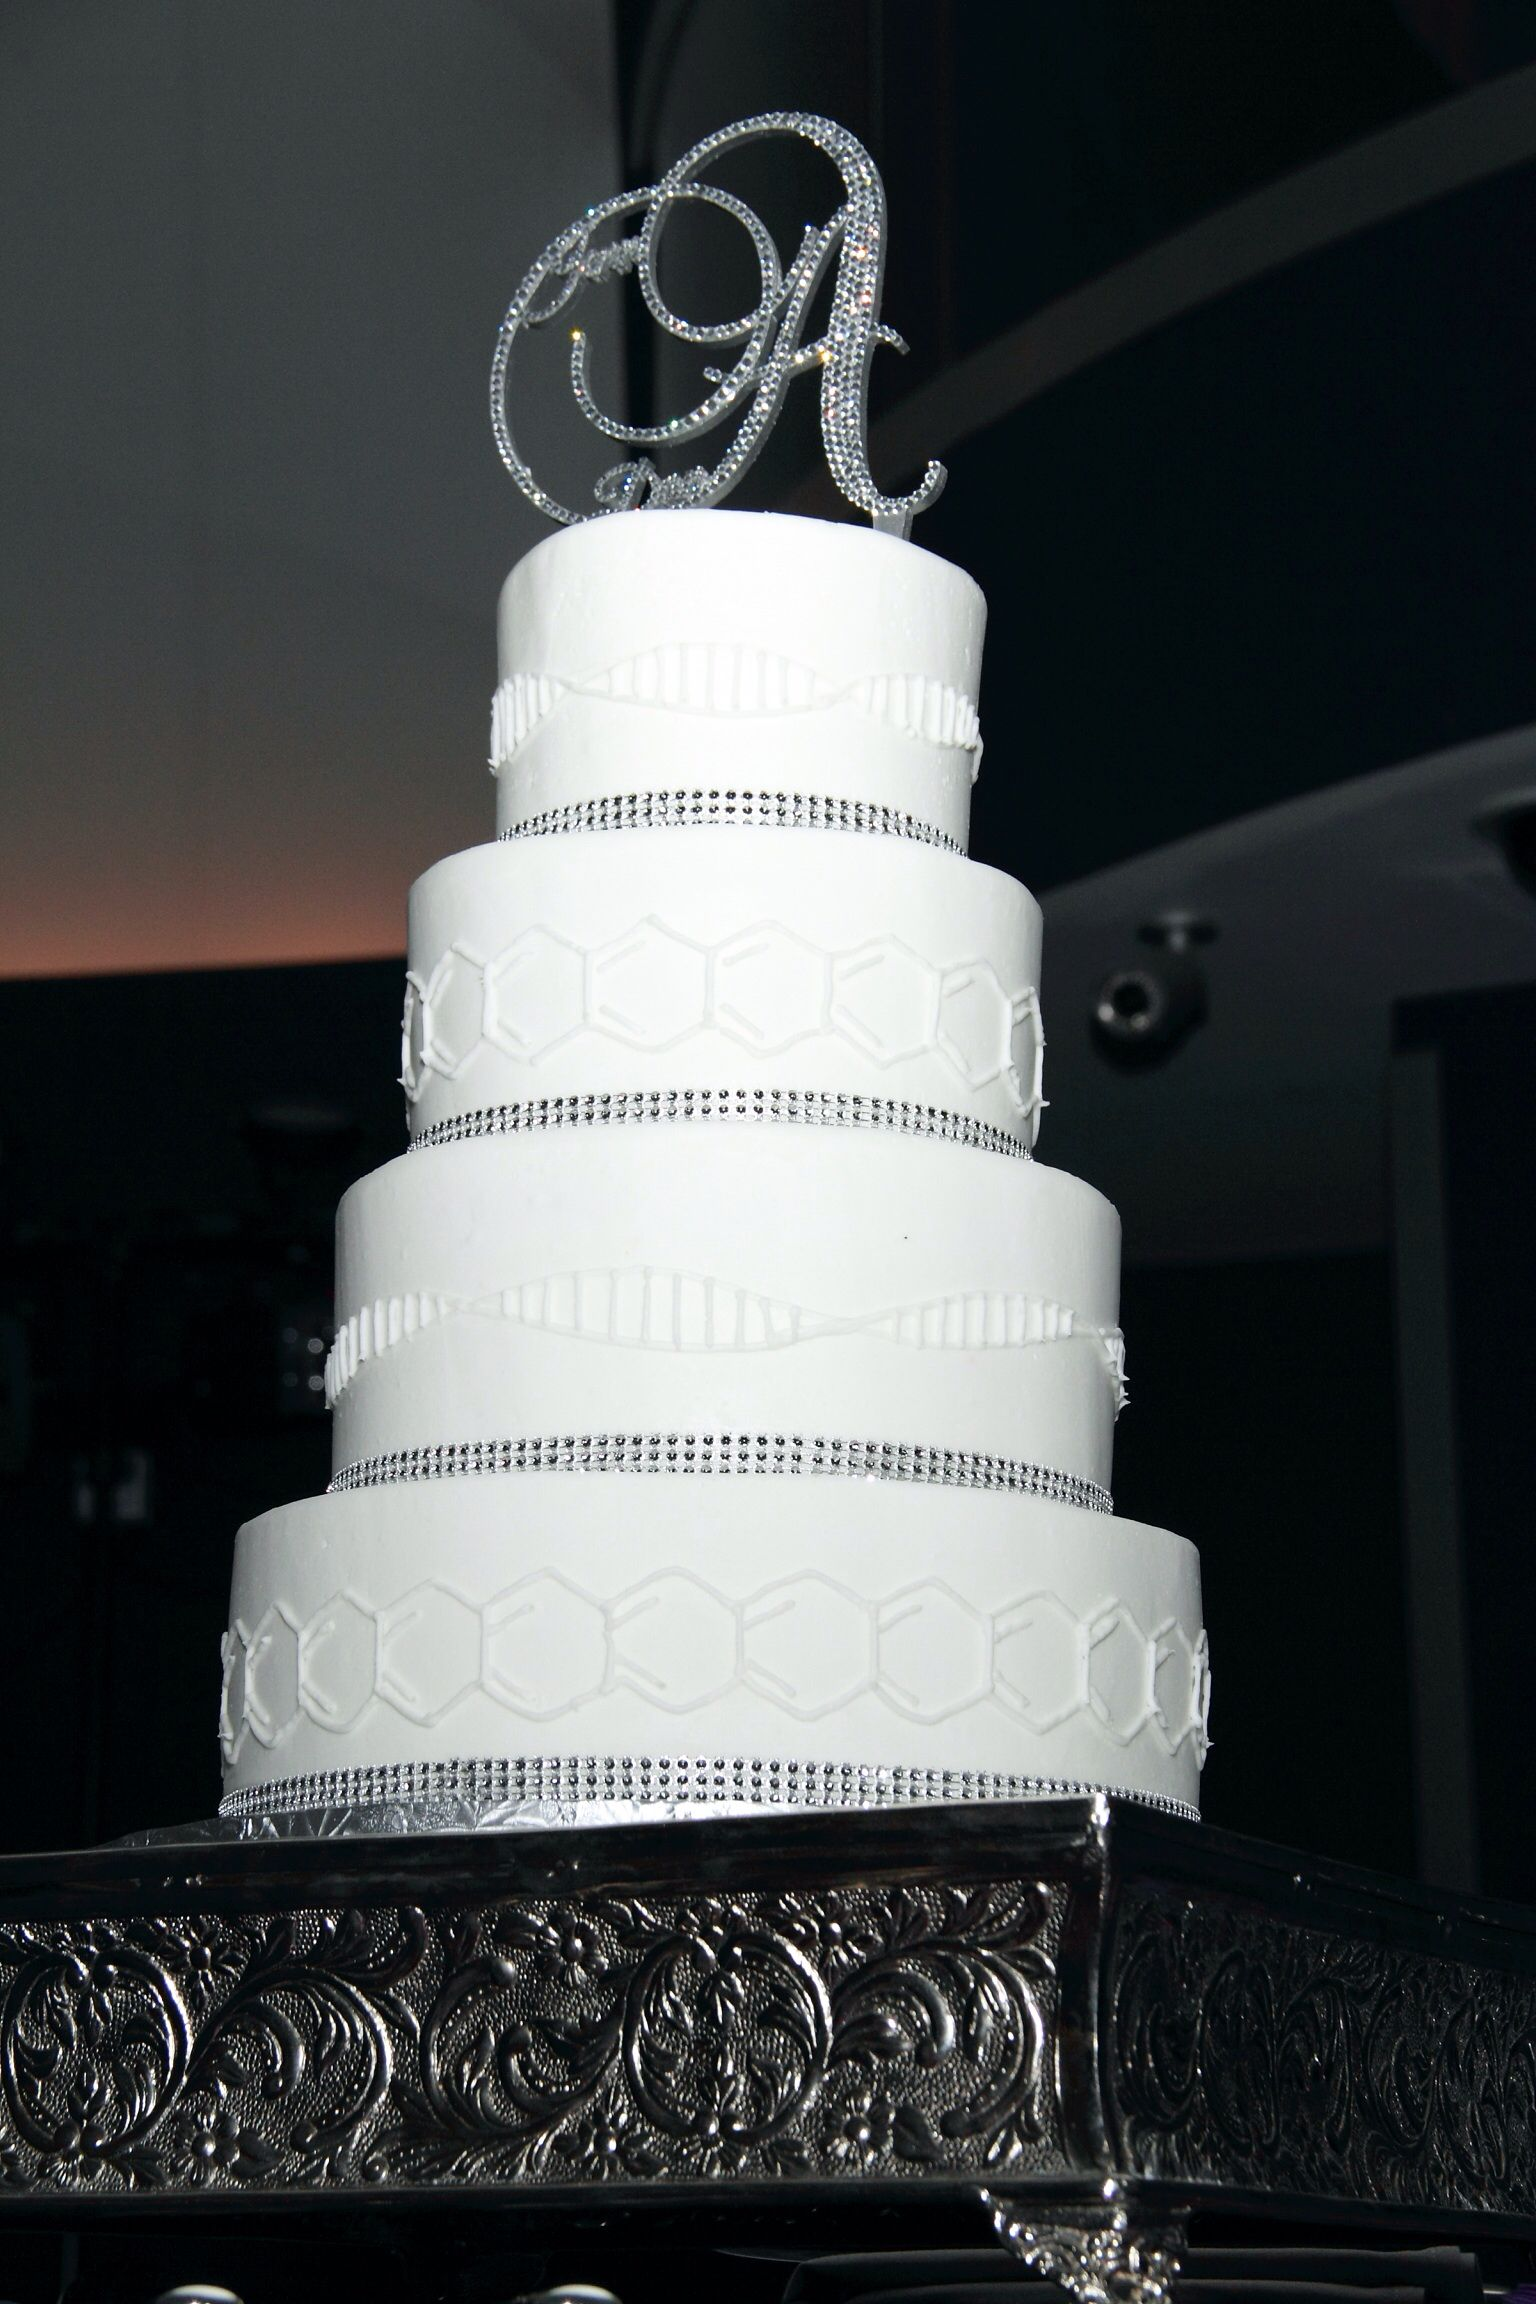 Bling And Science Wedding Cake With Initial Cake Topper. Every Tier Was A  Different Flavor